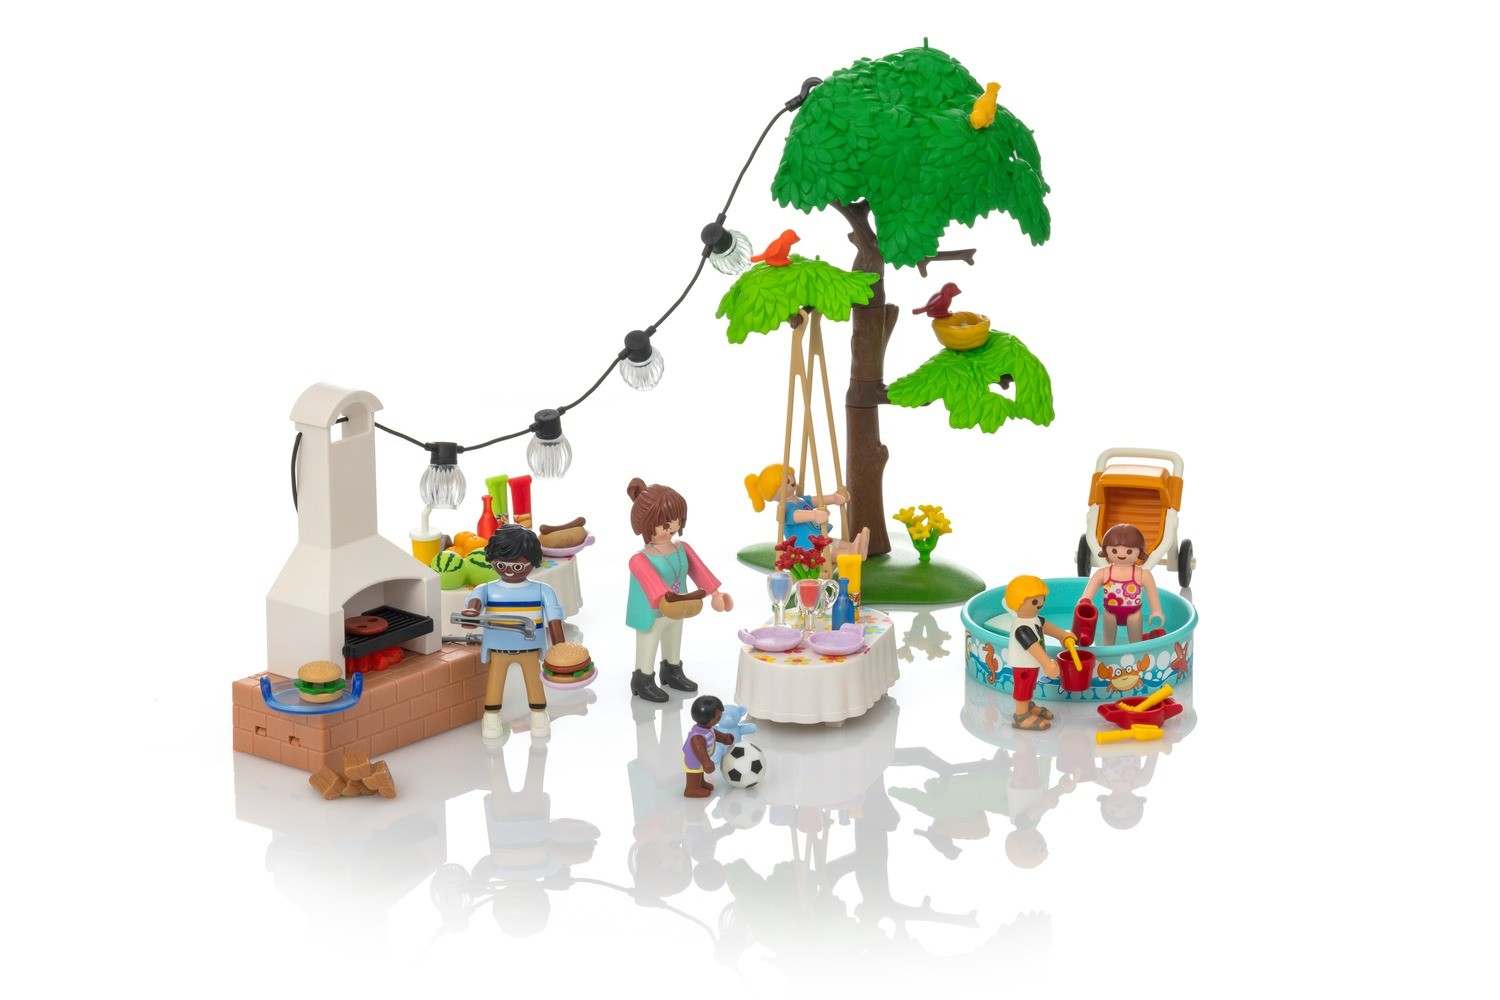 Party in the garden with barbecue - Playmobil sets 9272